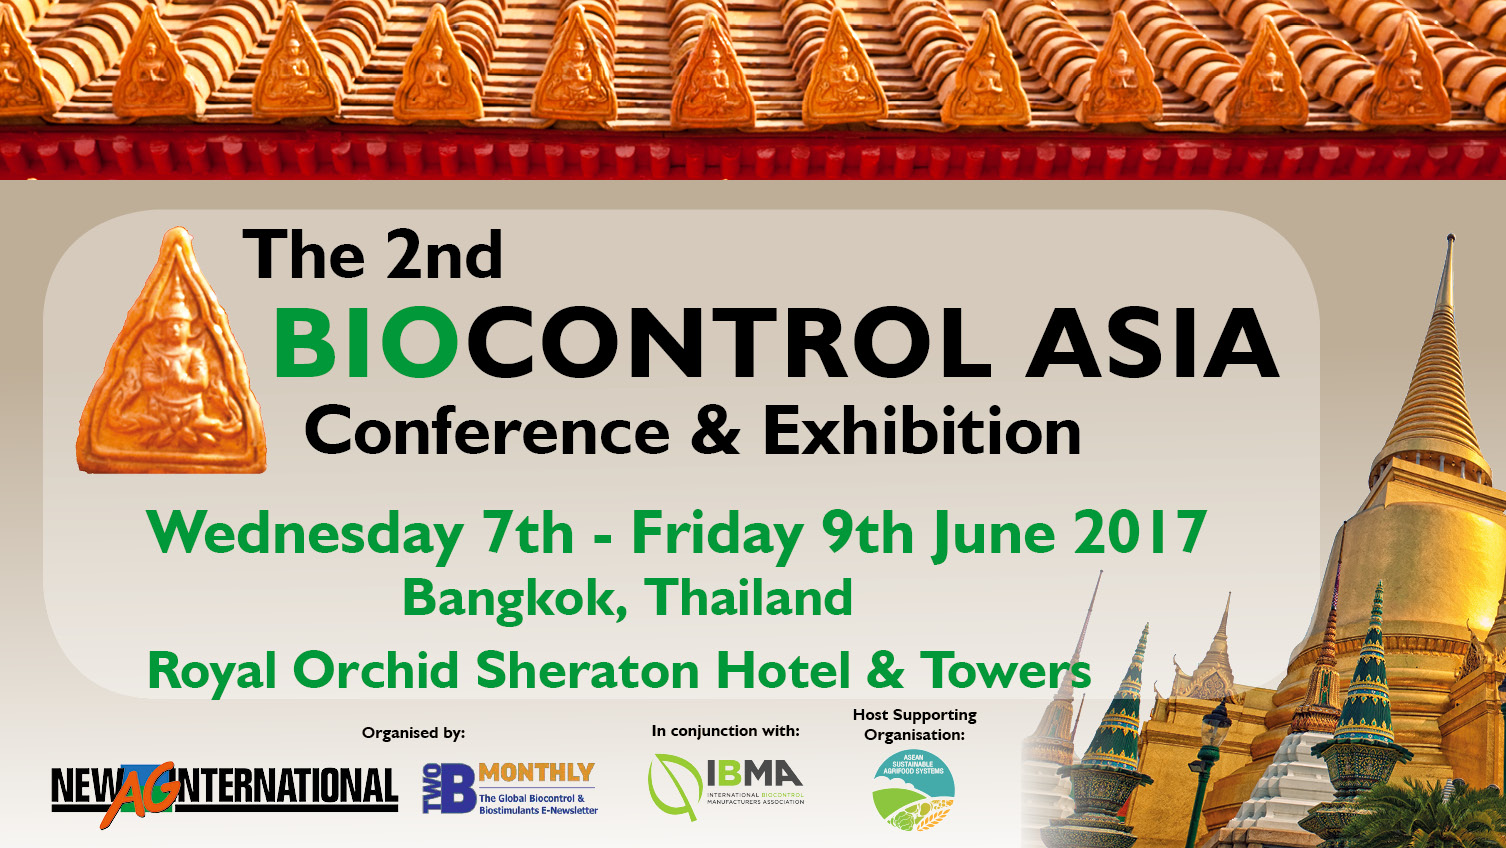 Registration is now open for the 2nd Biocontrol Asia Conference and Exhibition!